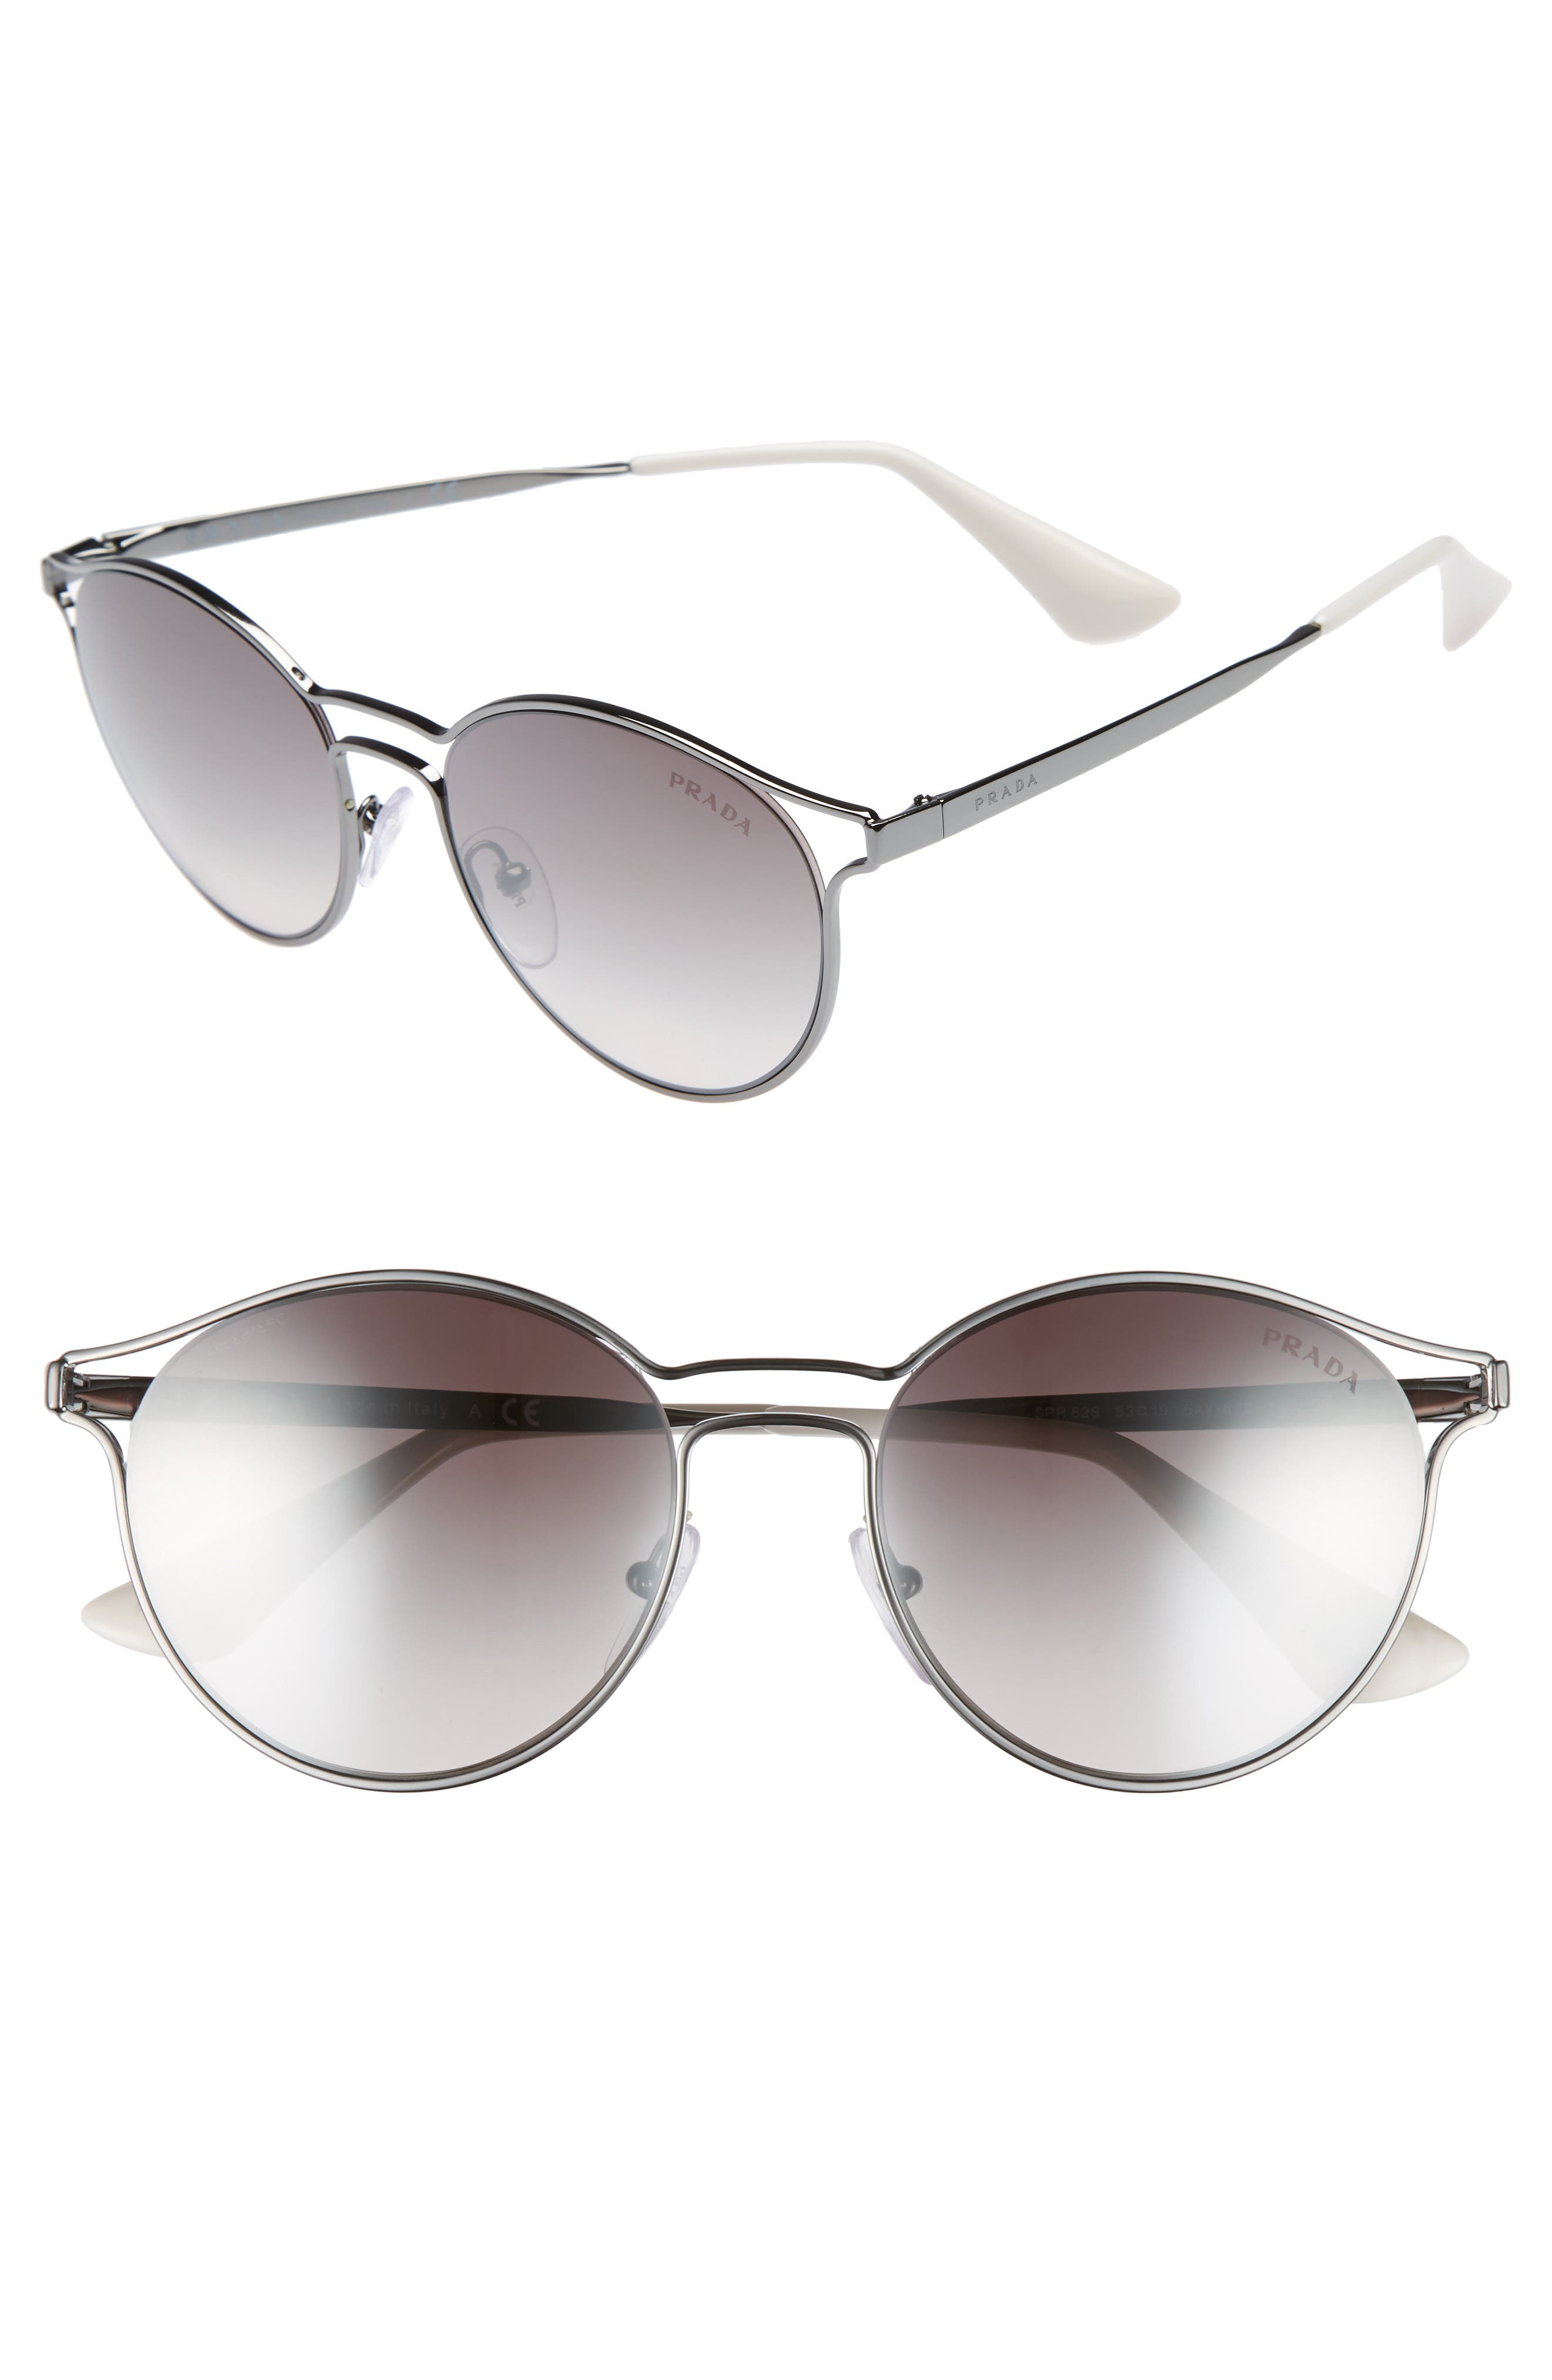 53mm Round Mirrored Sunglasses,                             Main thumbnail 1, color,                             062